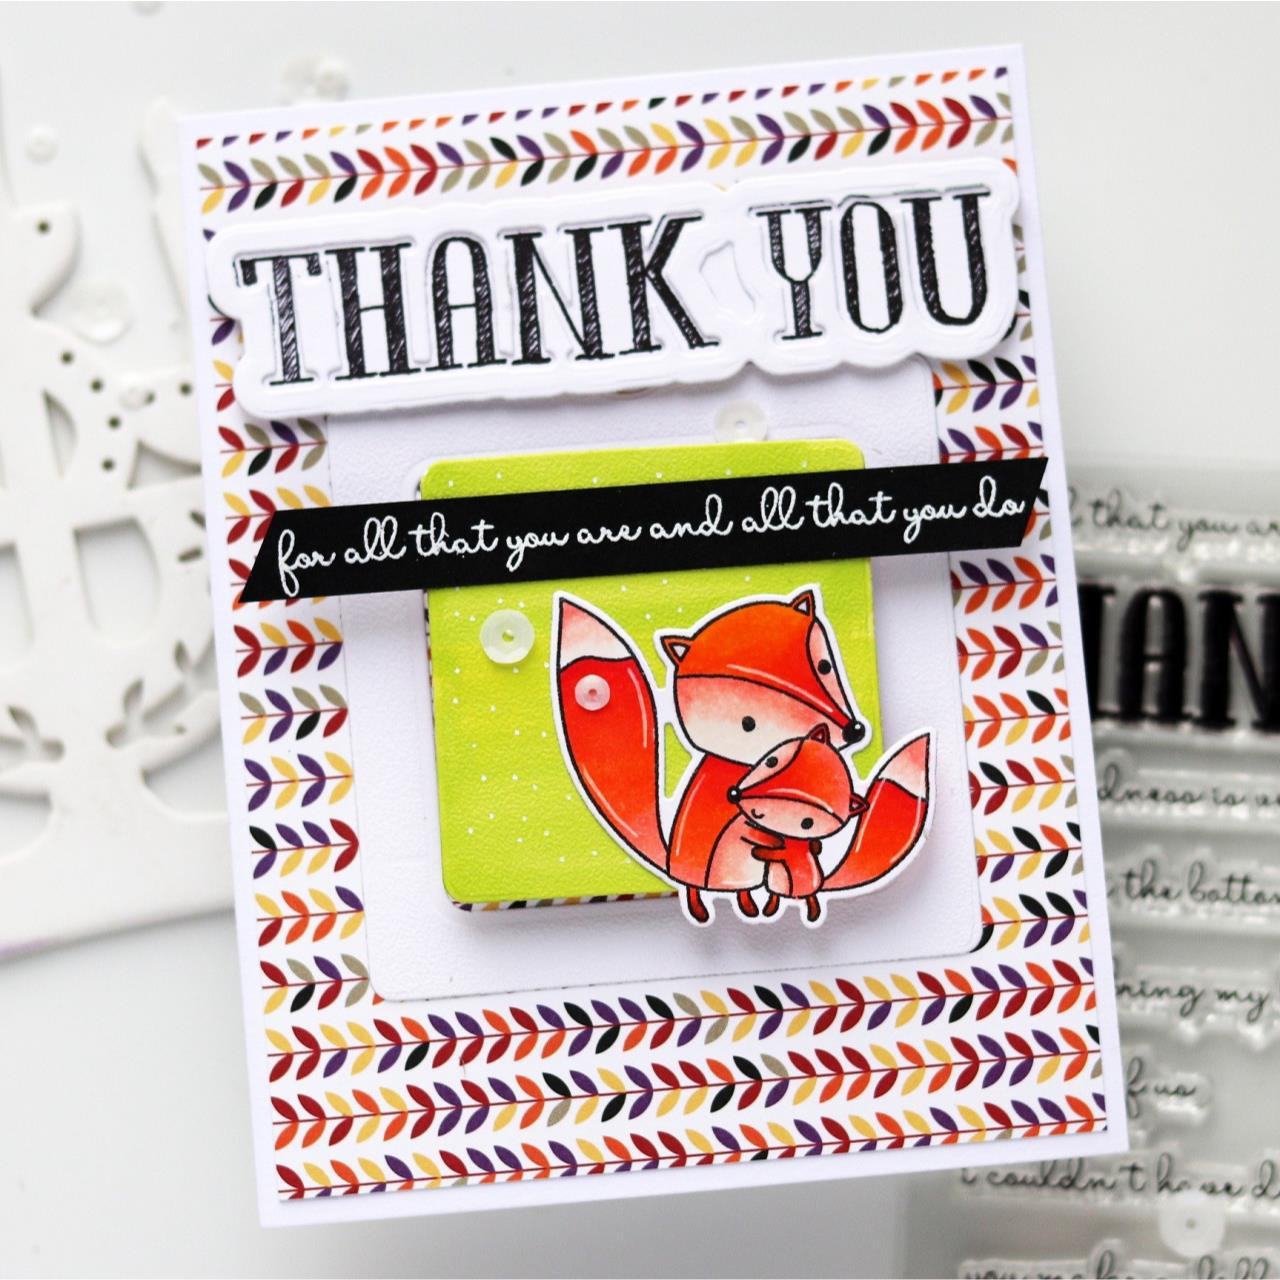 Thank You, Reverse Confetti Cuts -